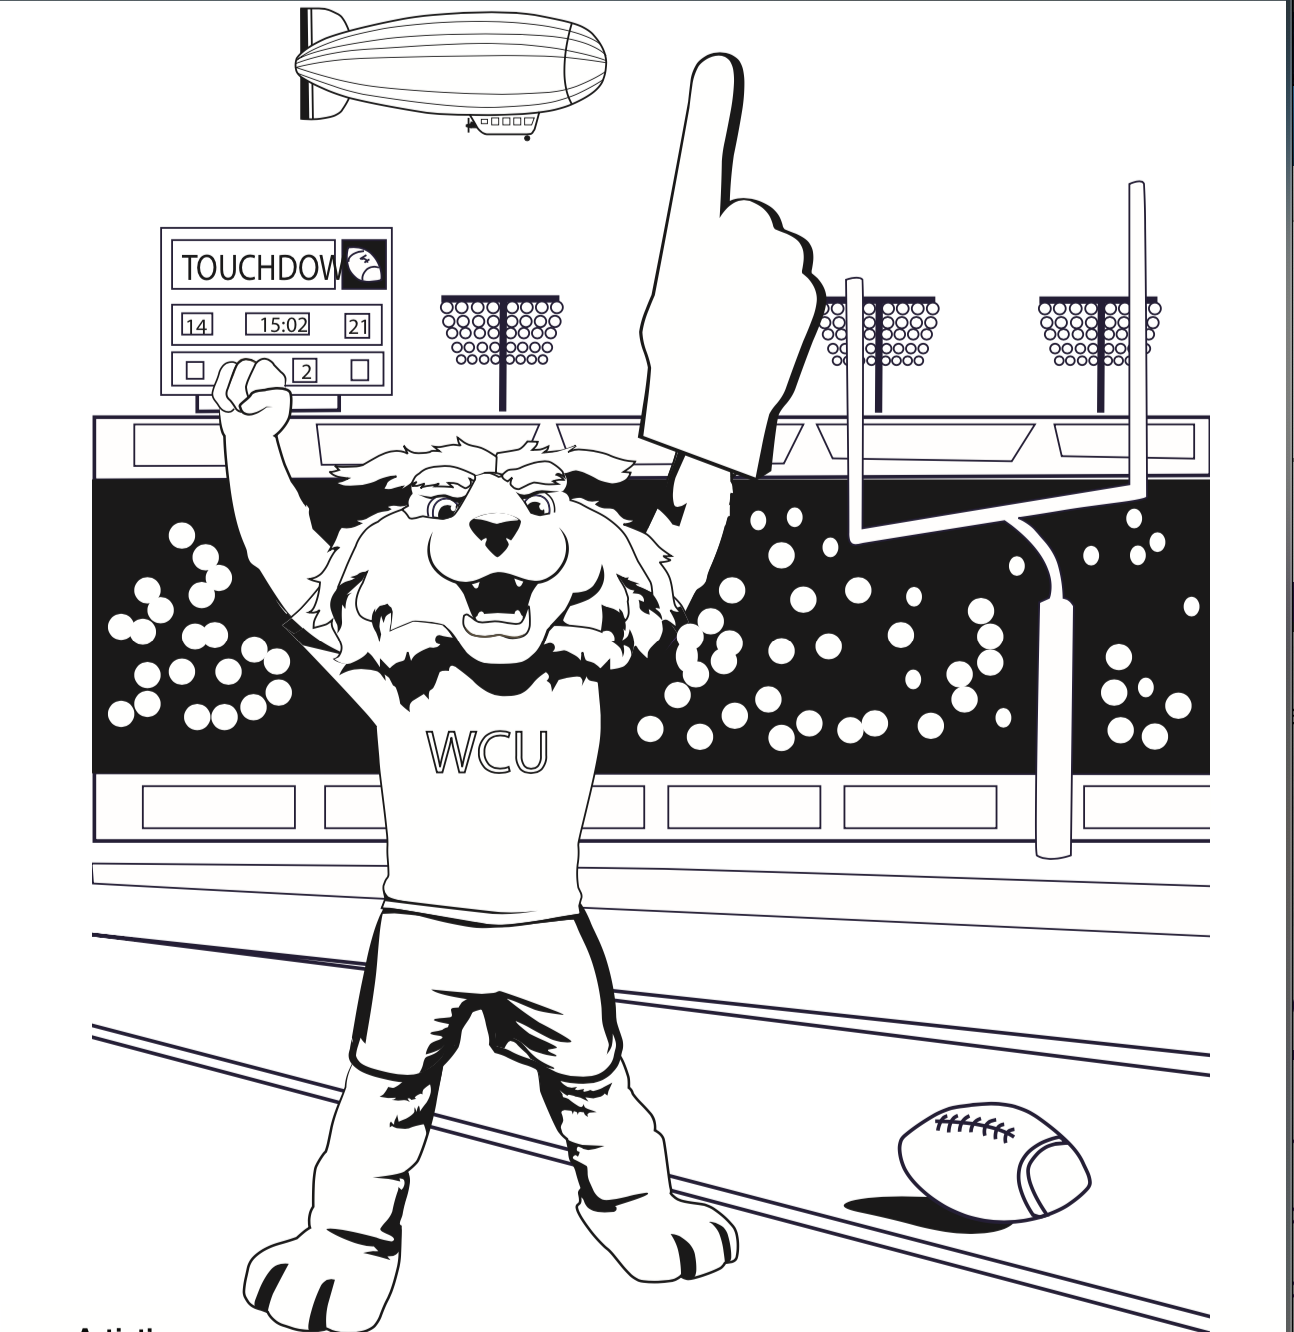 Image of a coloring book page of football paws